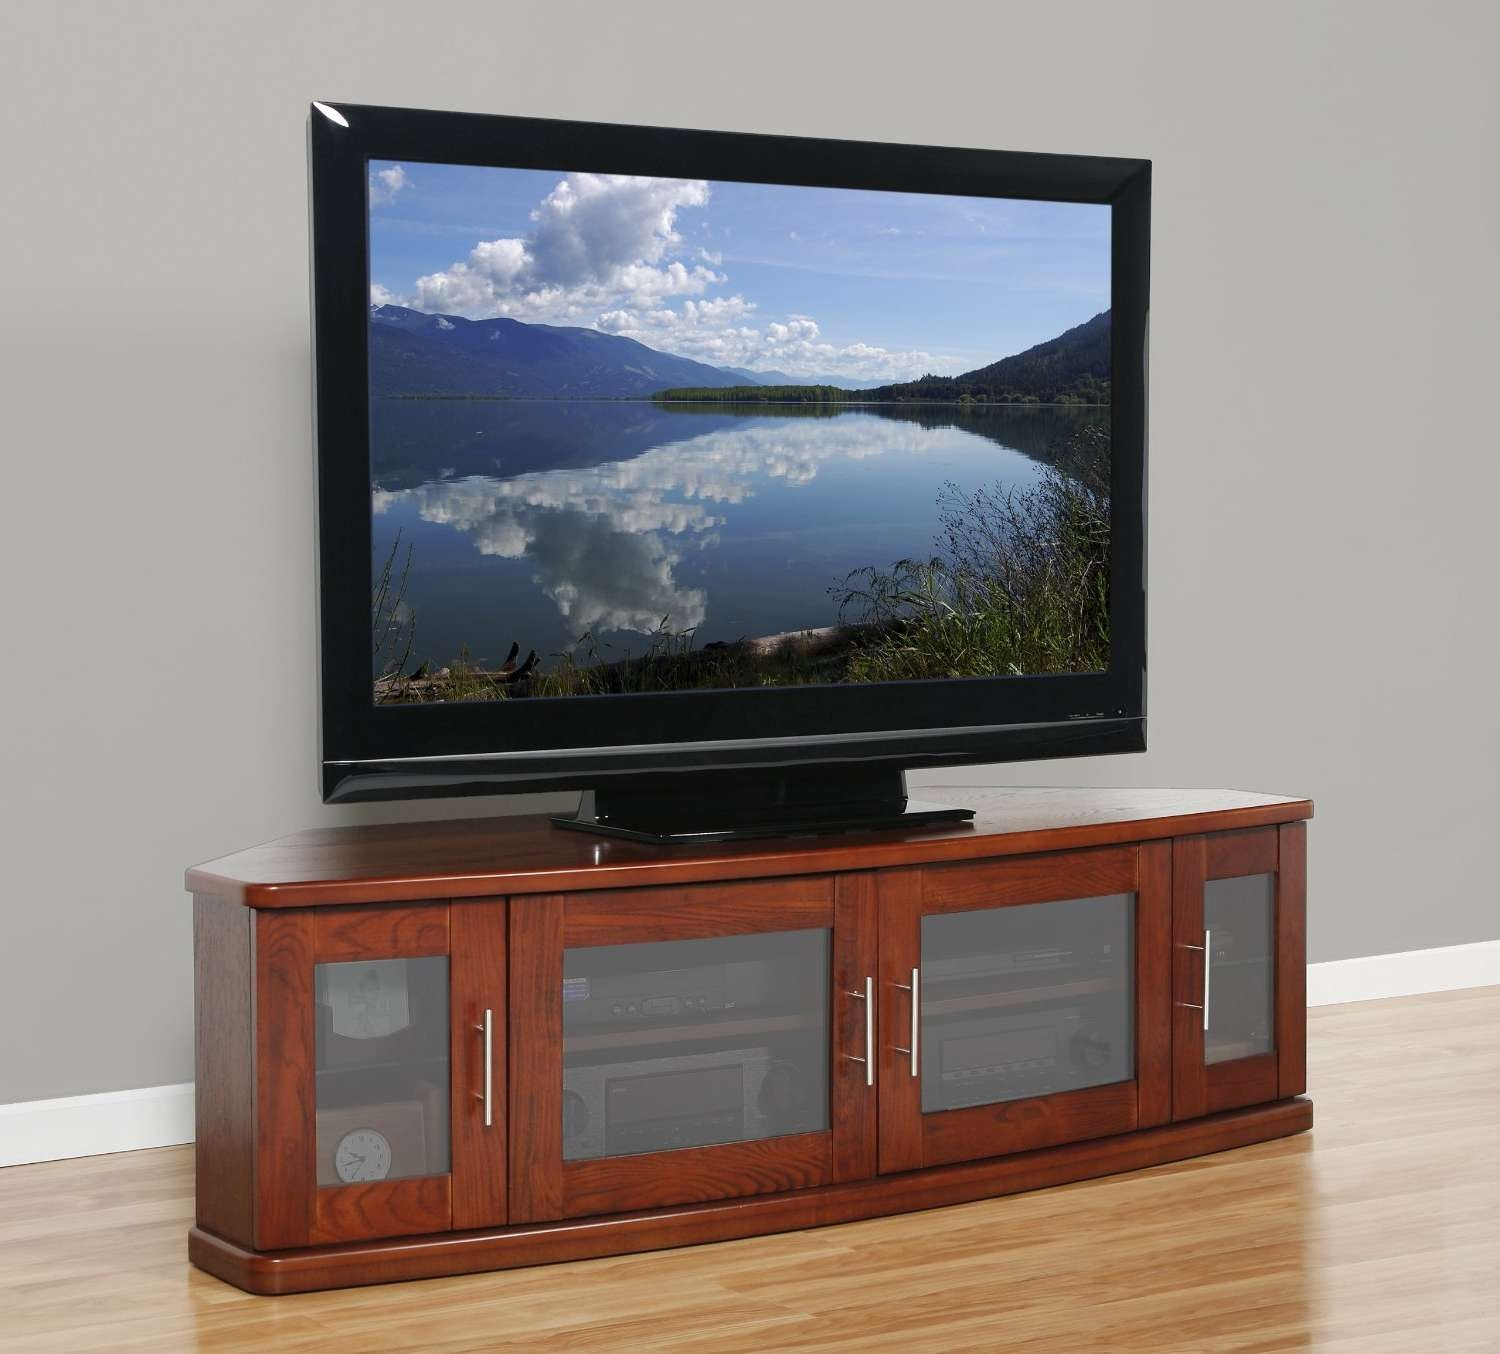 Curved Brown Figured Cherry Wood Low Cabinet For Tv Stand With 4 Throughout Long Wood Tv Stands (View 10 of 15)